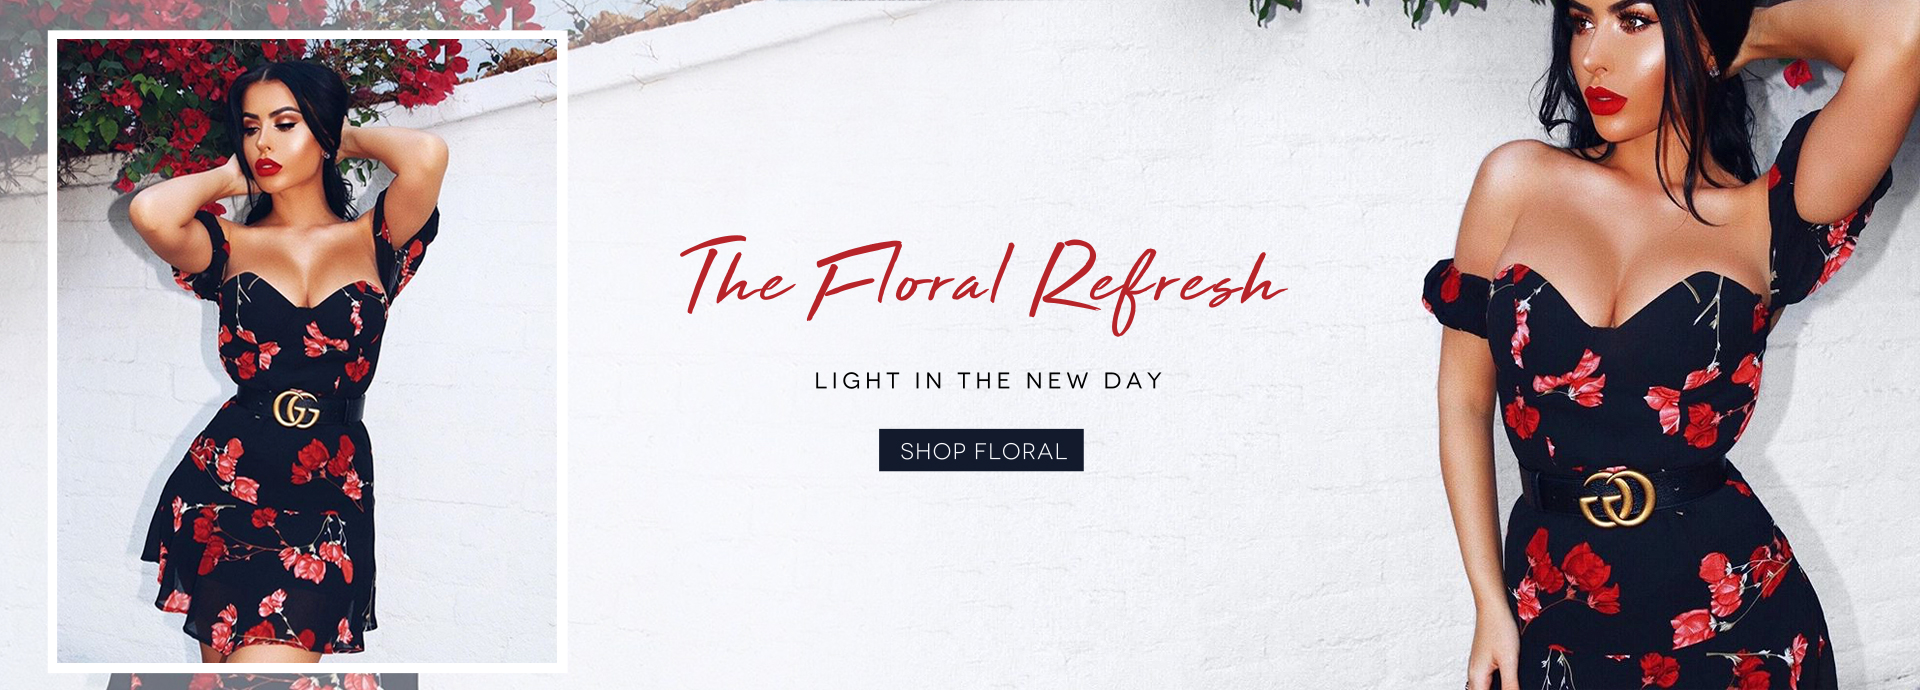 The Floral Refresh